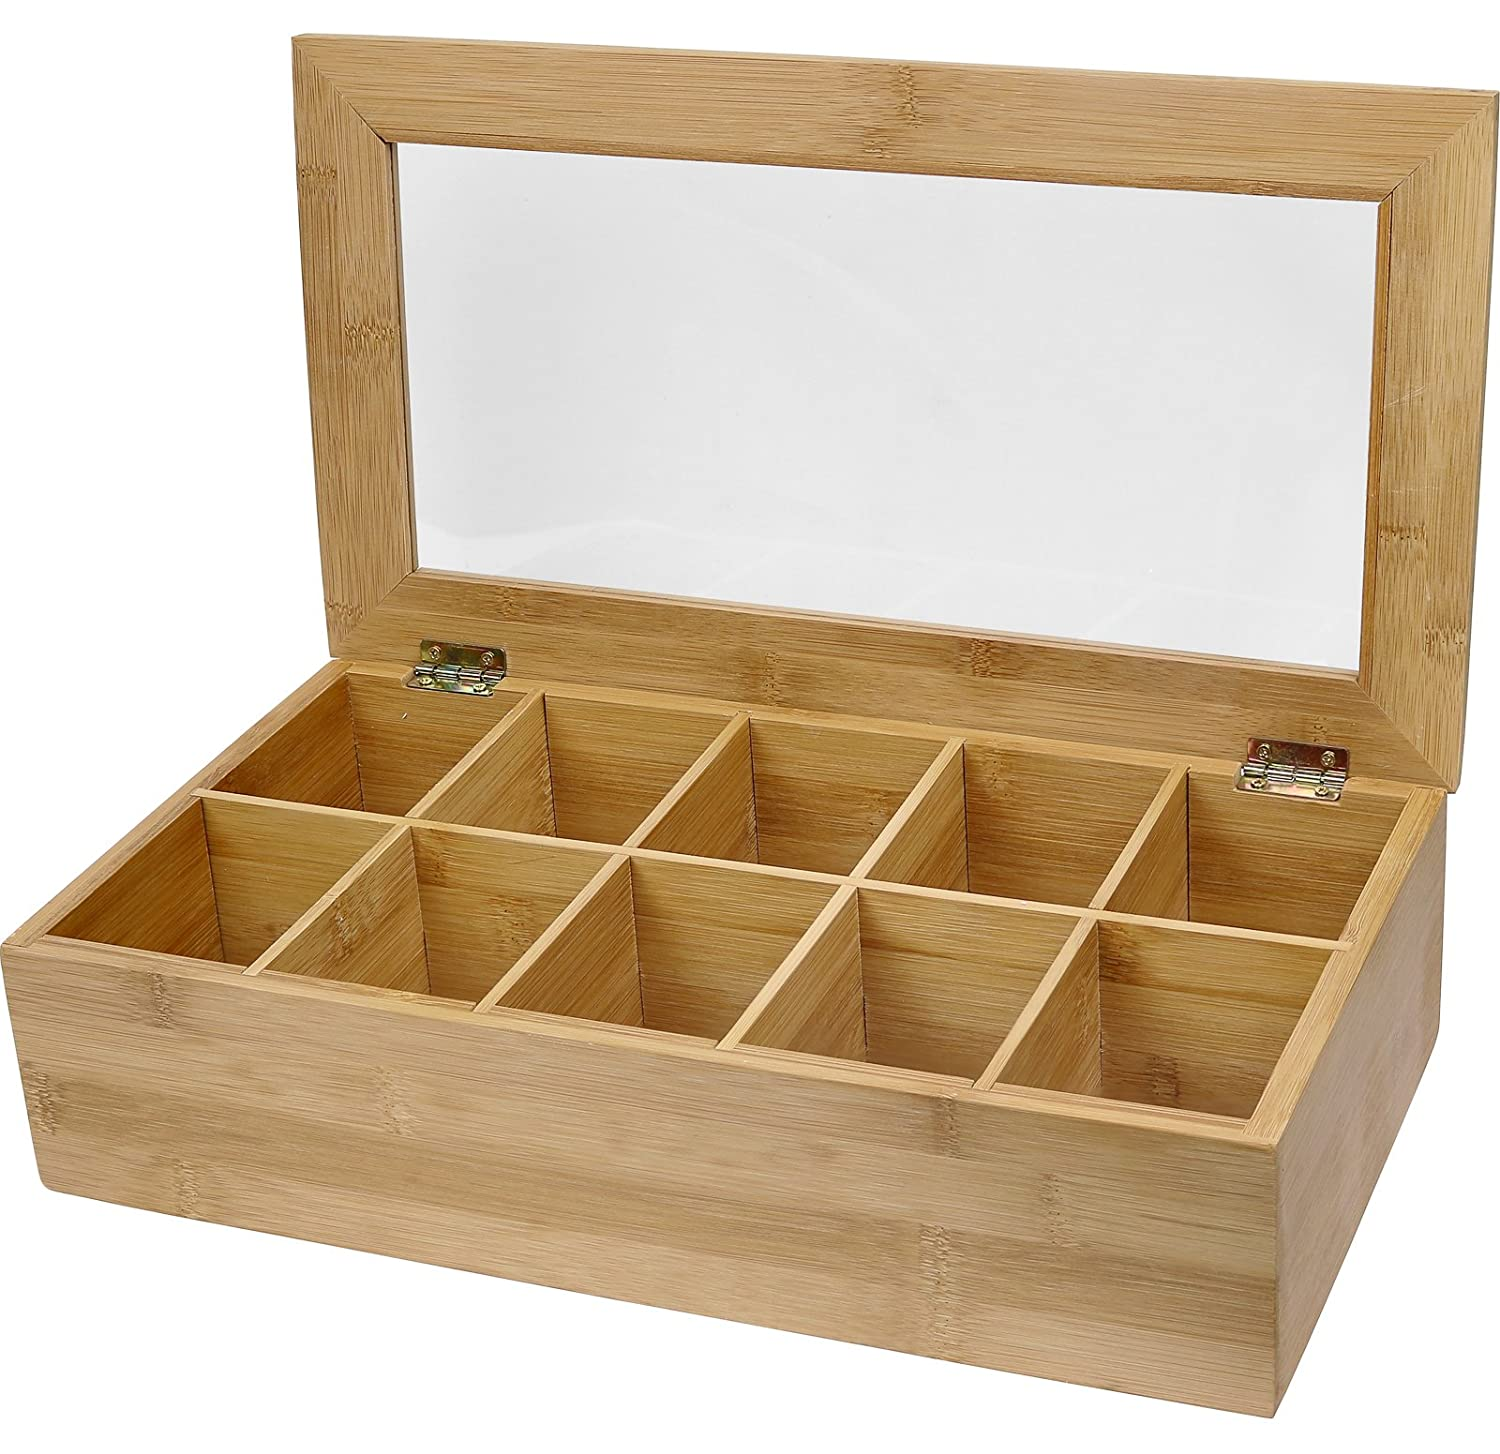 Beautiful Amazon.com: Estilo Bamboo Tea Storage Box, 10 Equally Divided Compartments:  Kitchen U0026 Dining